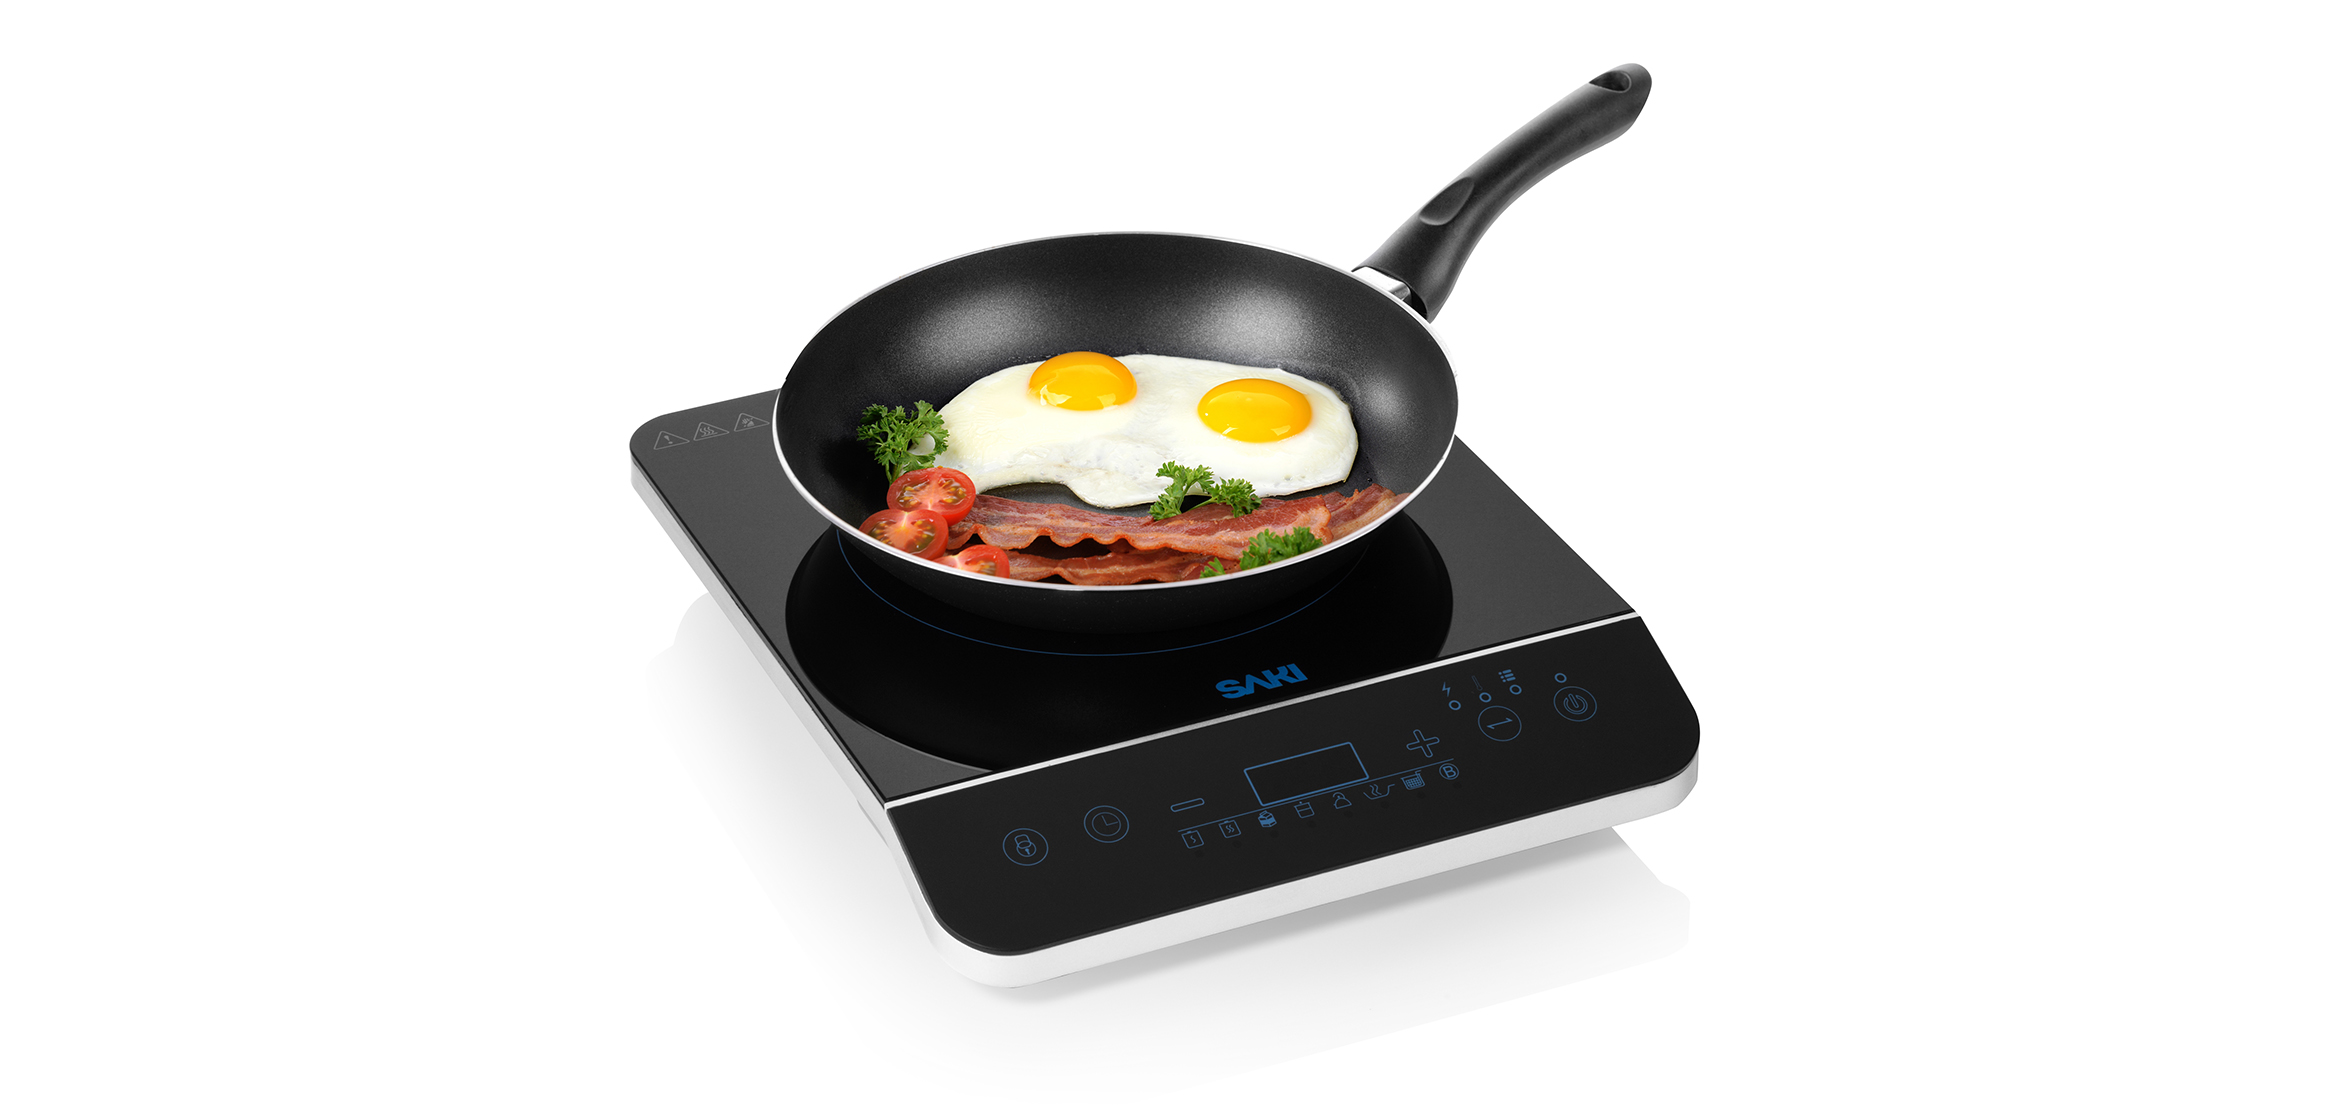 How to Use an Induction Cooktop Efficiently?